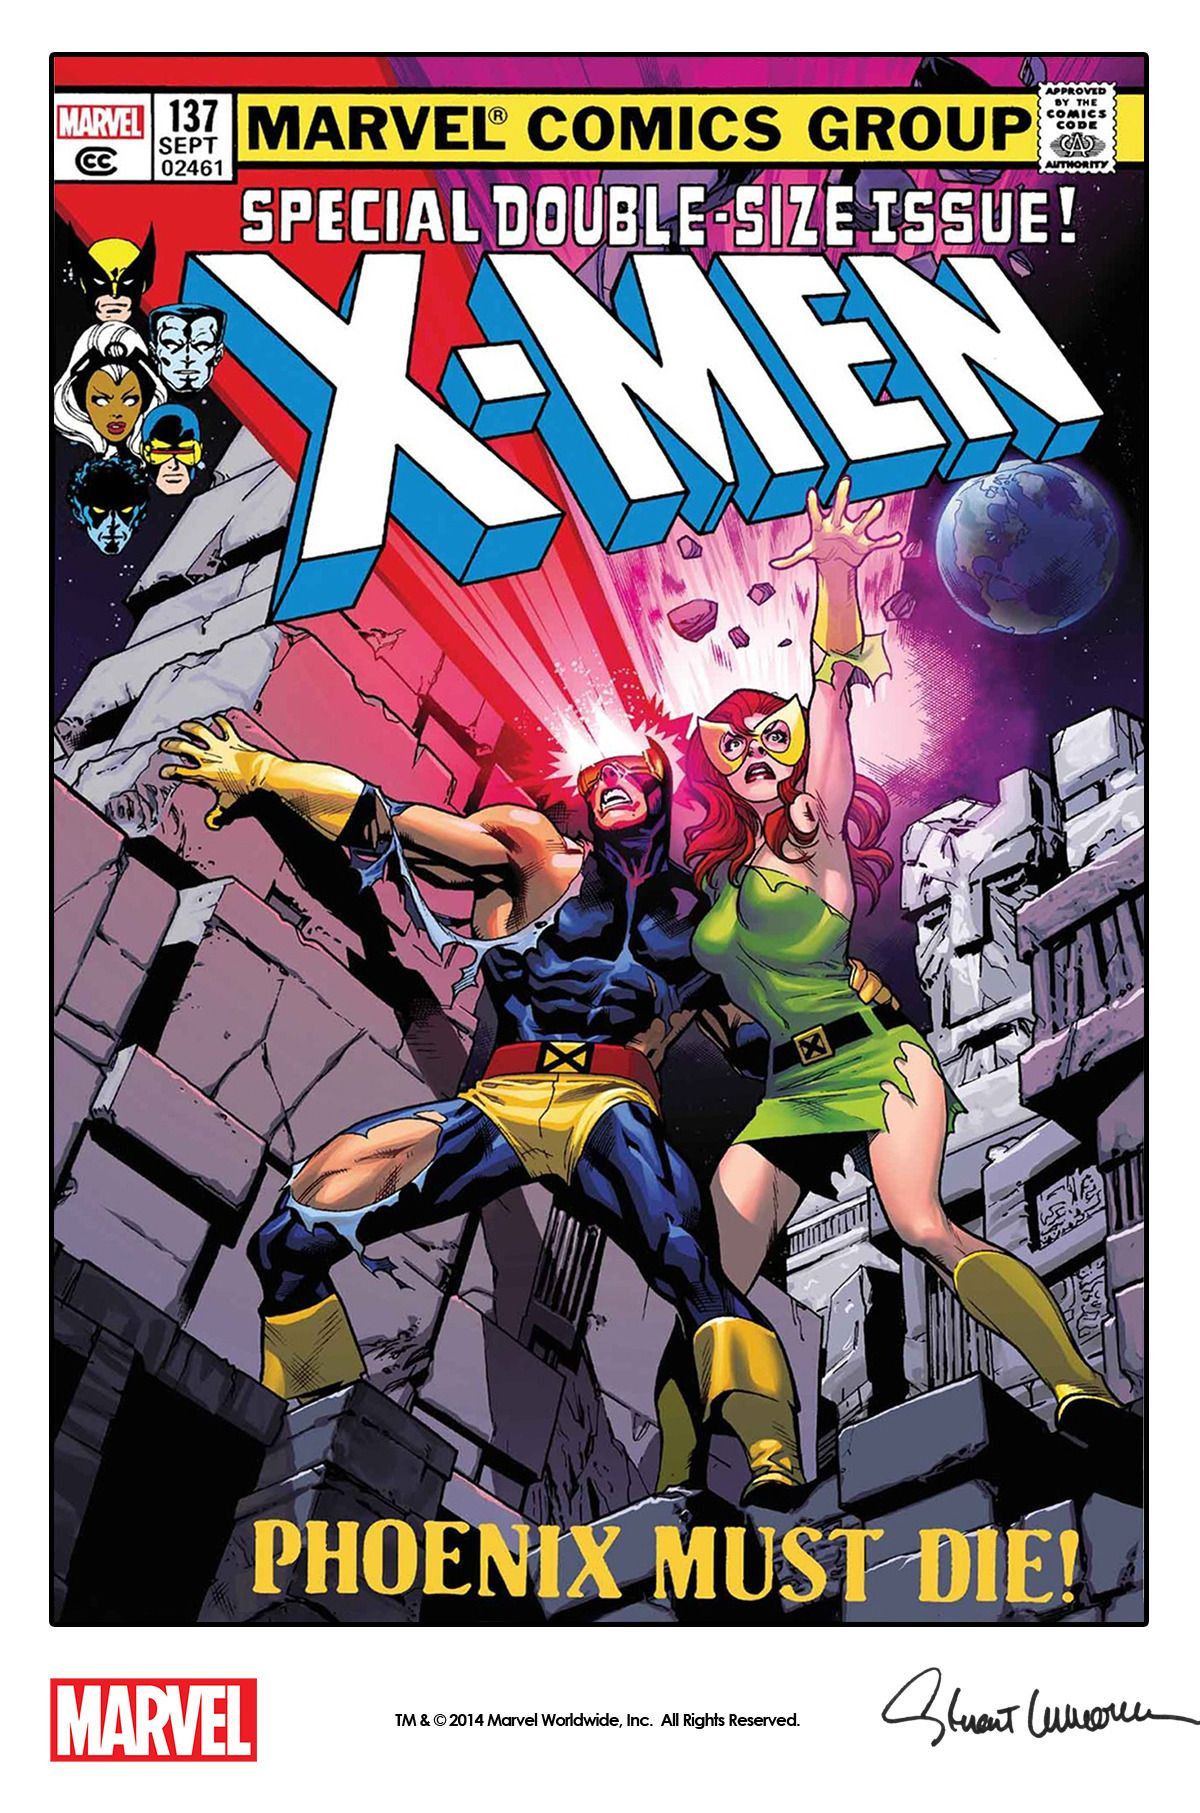 An Homage To John Byrne S Brilliant Cover For The Marvel Project Comics The Uncanny X Men